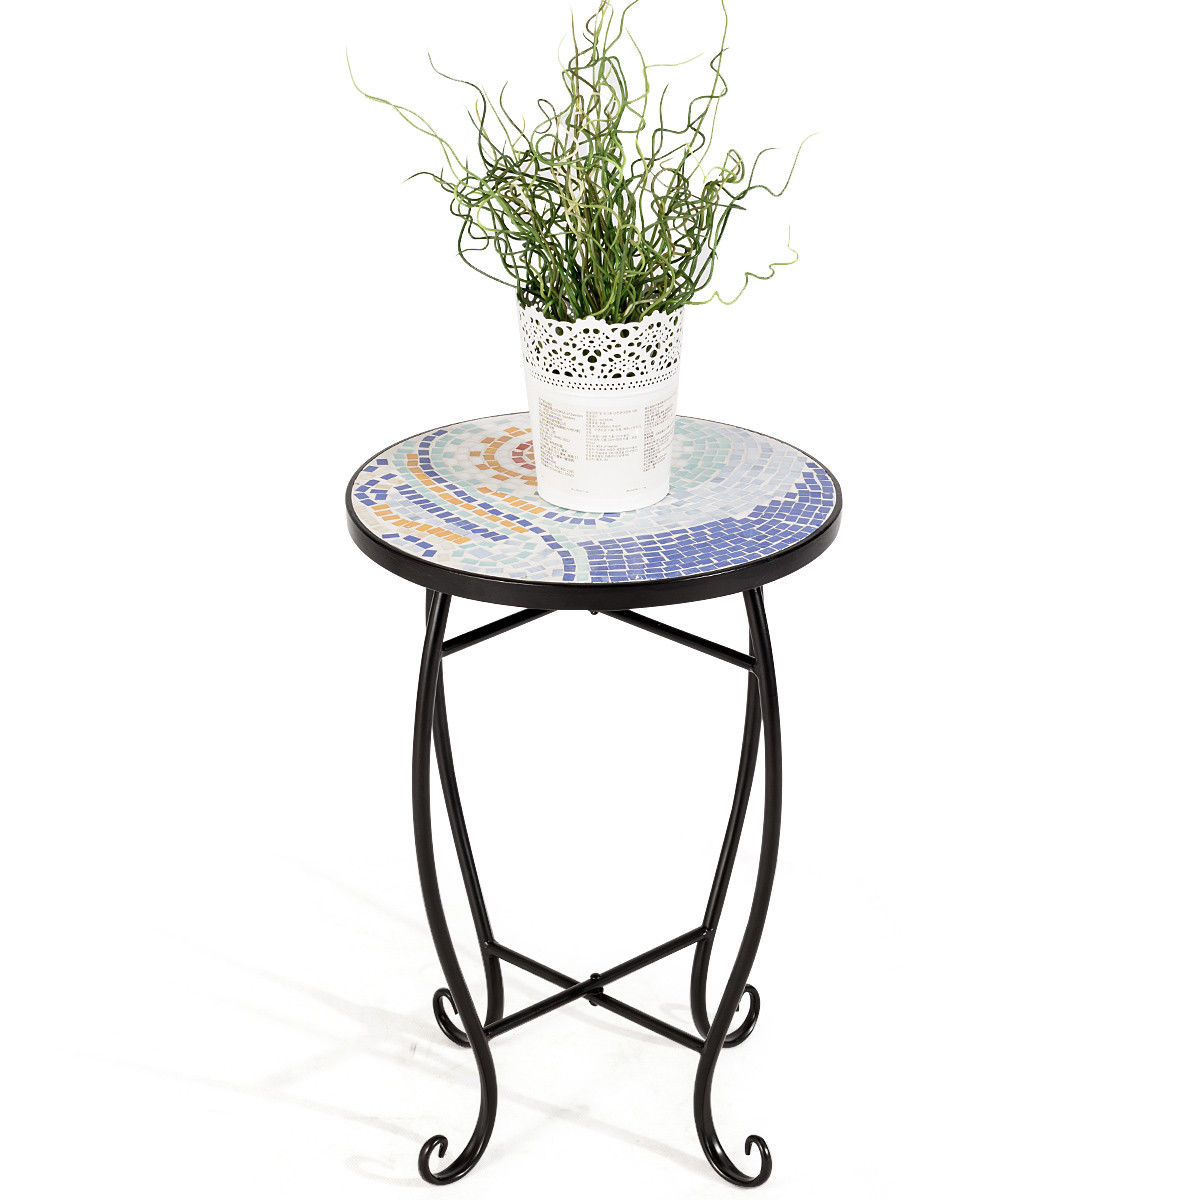 way outdoor indoor accent table plant stand scheme metal garden steel ocean blue tablecloth small black wood end tables threshold dining ikea high target vizio sound bar best